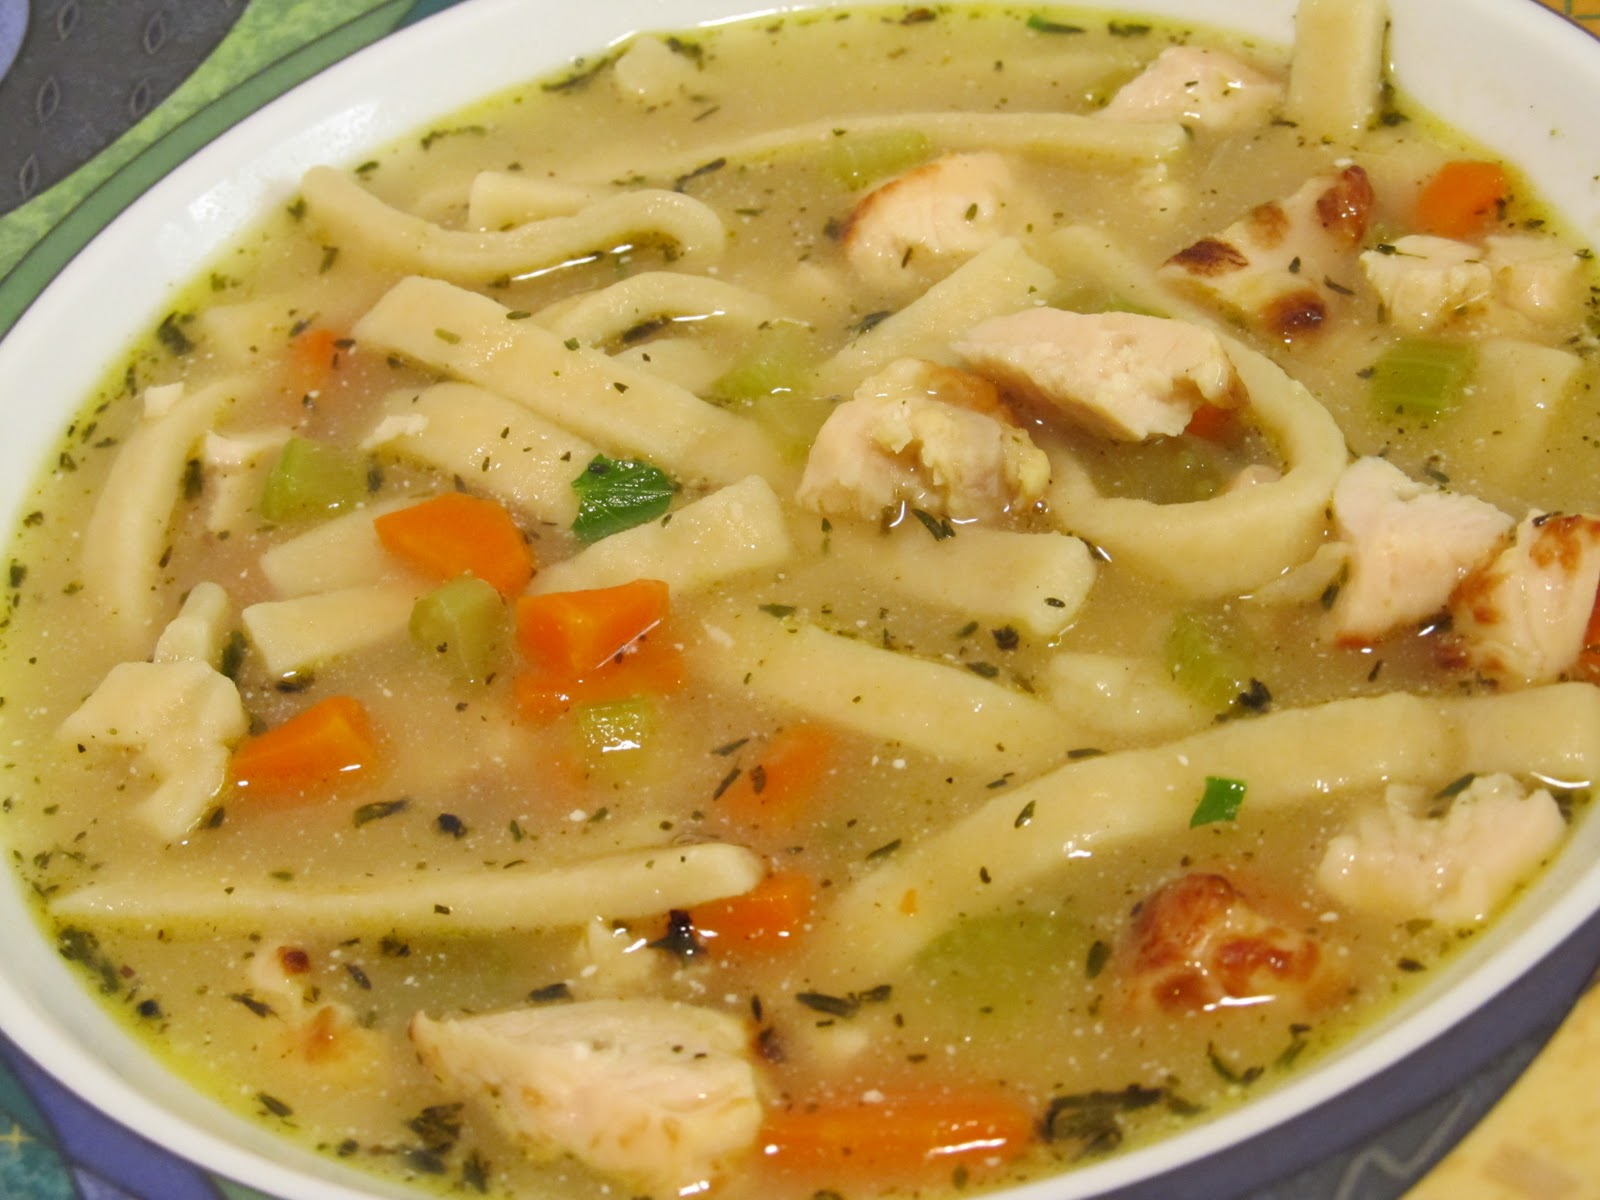 Jenn's Food Journey: Chicken Noodle Soup